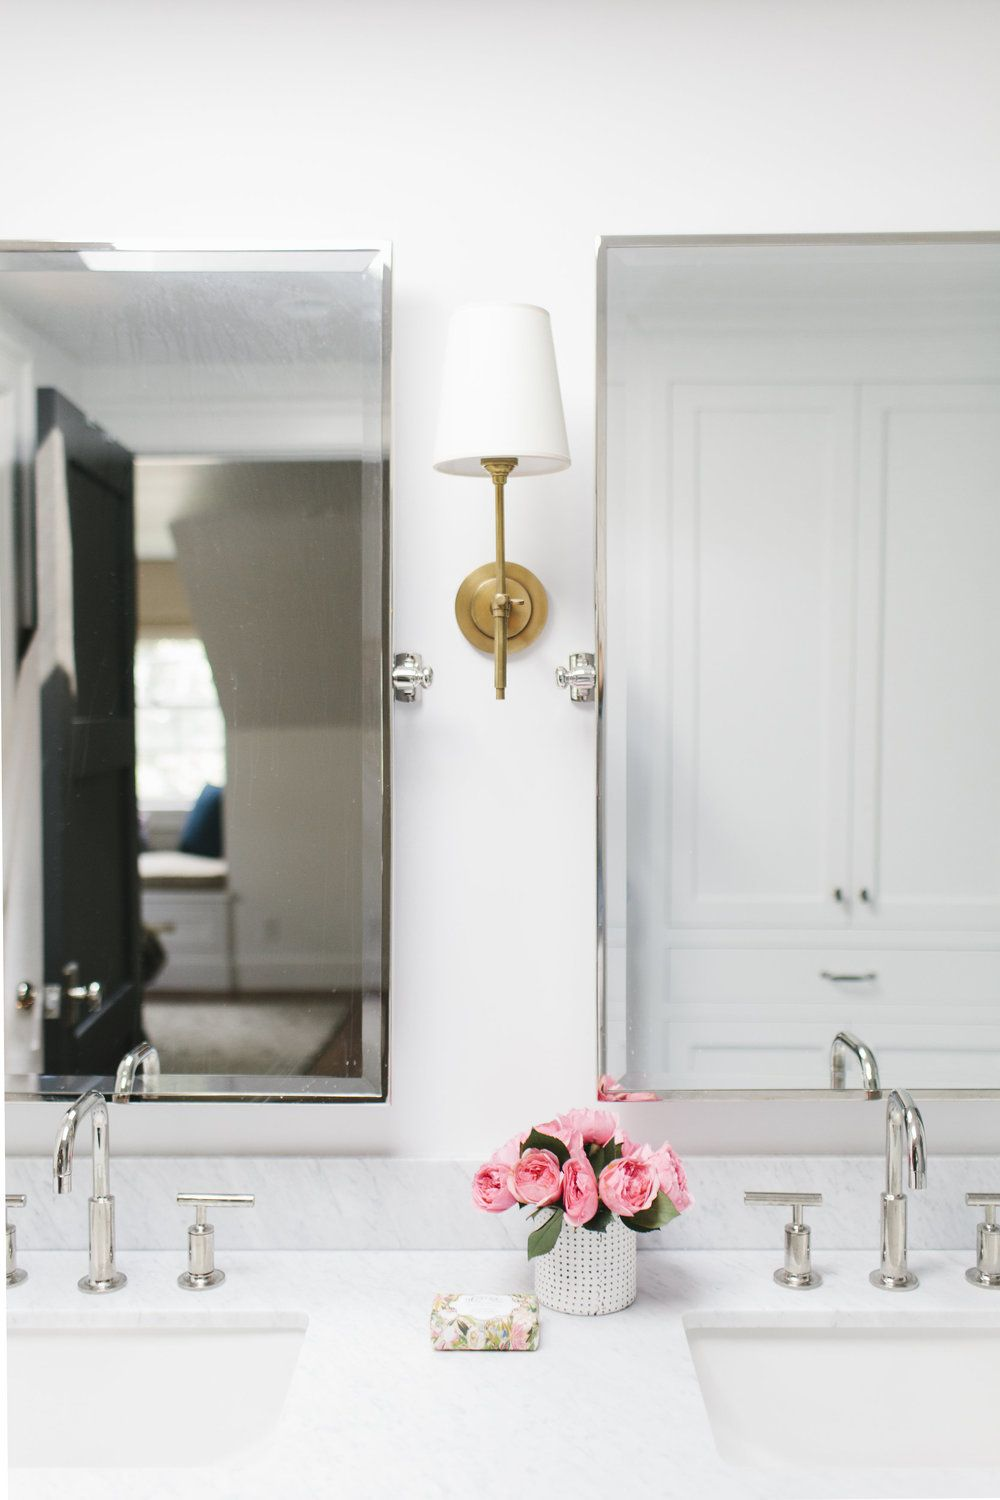 And cabinet pulls with antique brass sconces and a chrome faucet - Brass Sconces Studio Mcgee